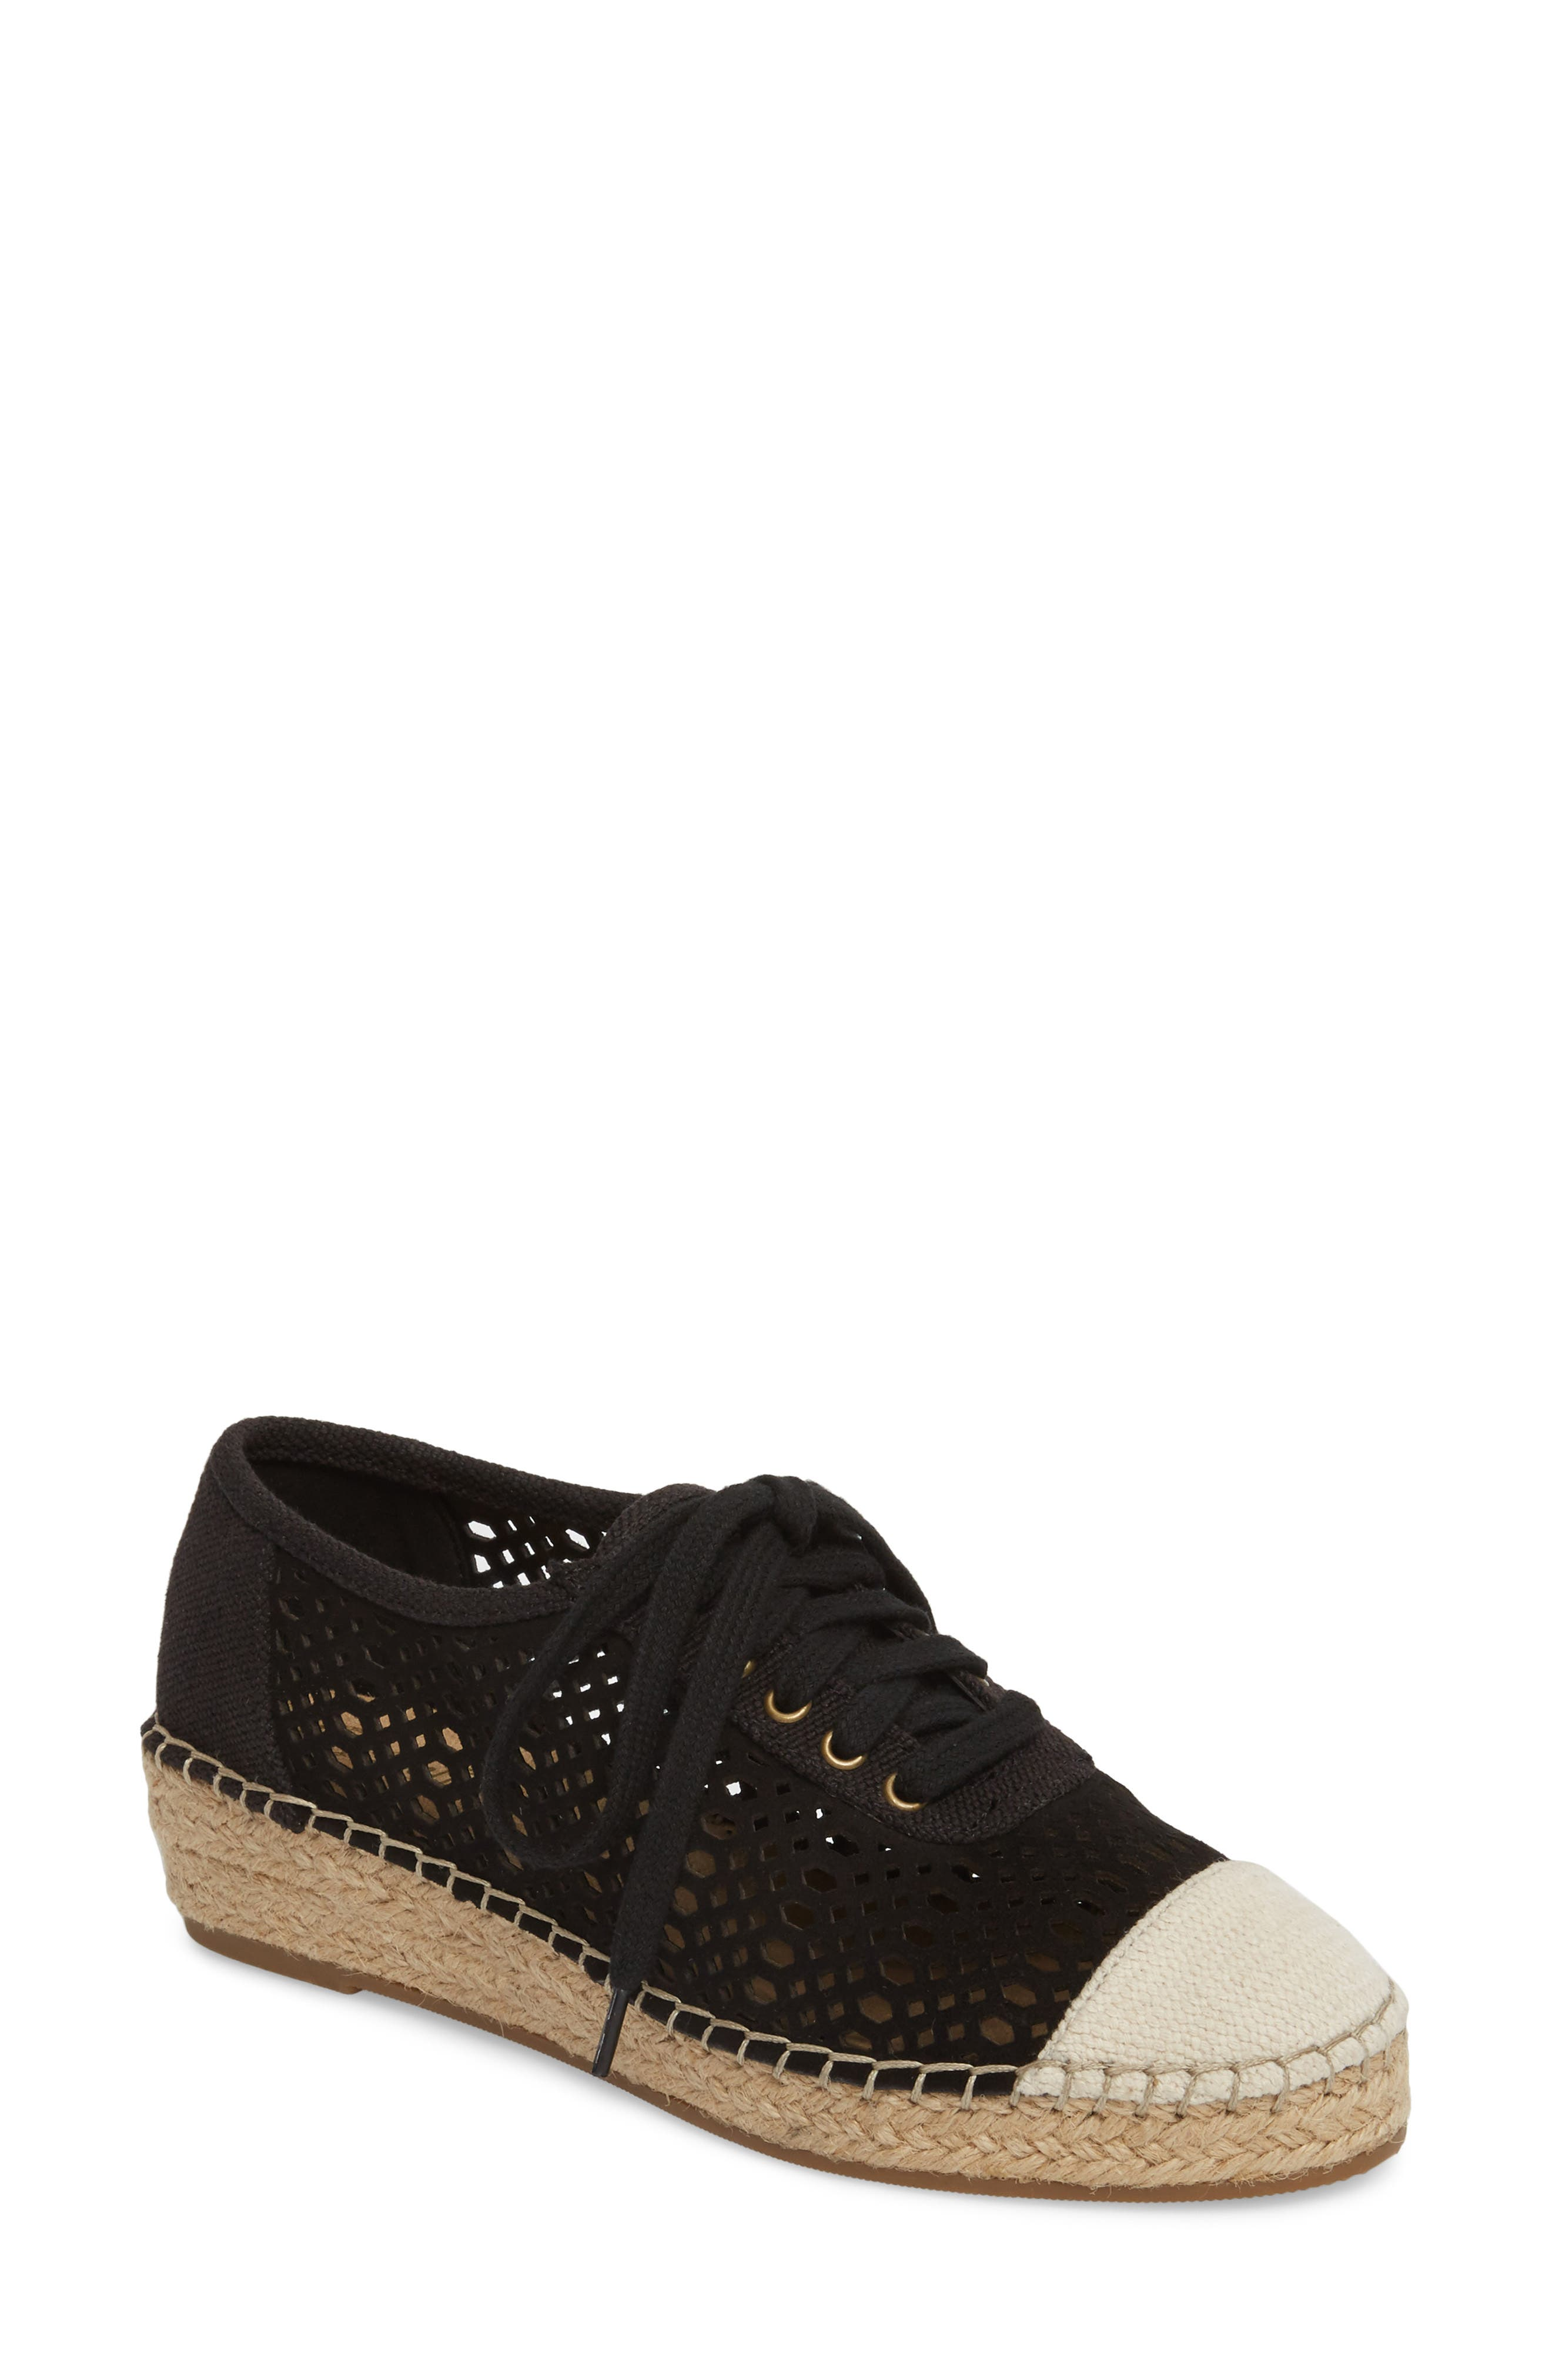 Clementine Espadrille Sneaker,                         Main,                         color, 018